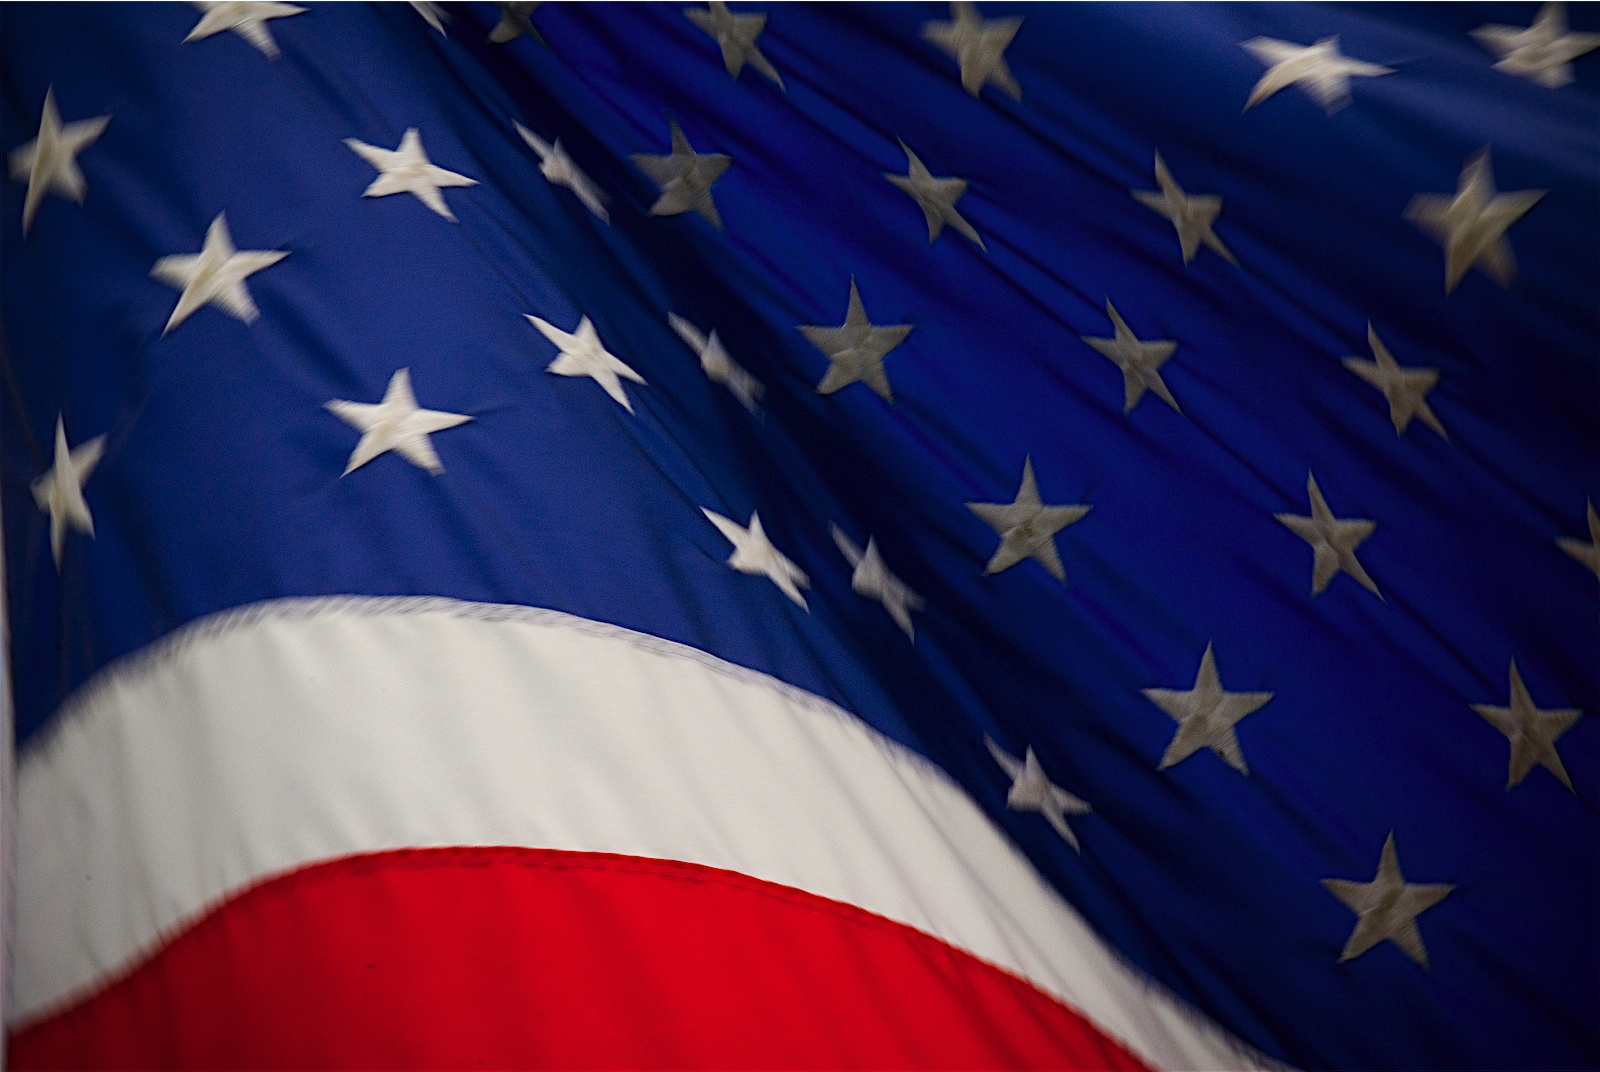 http://3.bp.blogspot.com/-rdfB6ybGhM4/UKnJFzrAobI/AAAAAAAABug/YFzSv7AWzrs/s1600/USA+Flag+the+best+quality+wallpaper.jpg